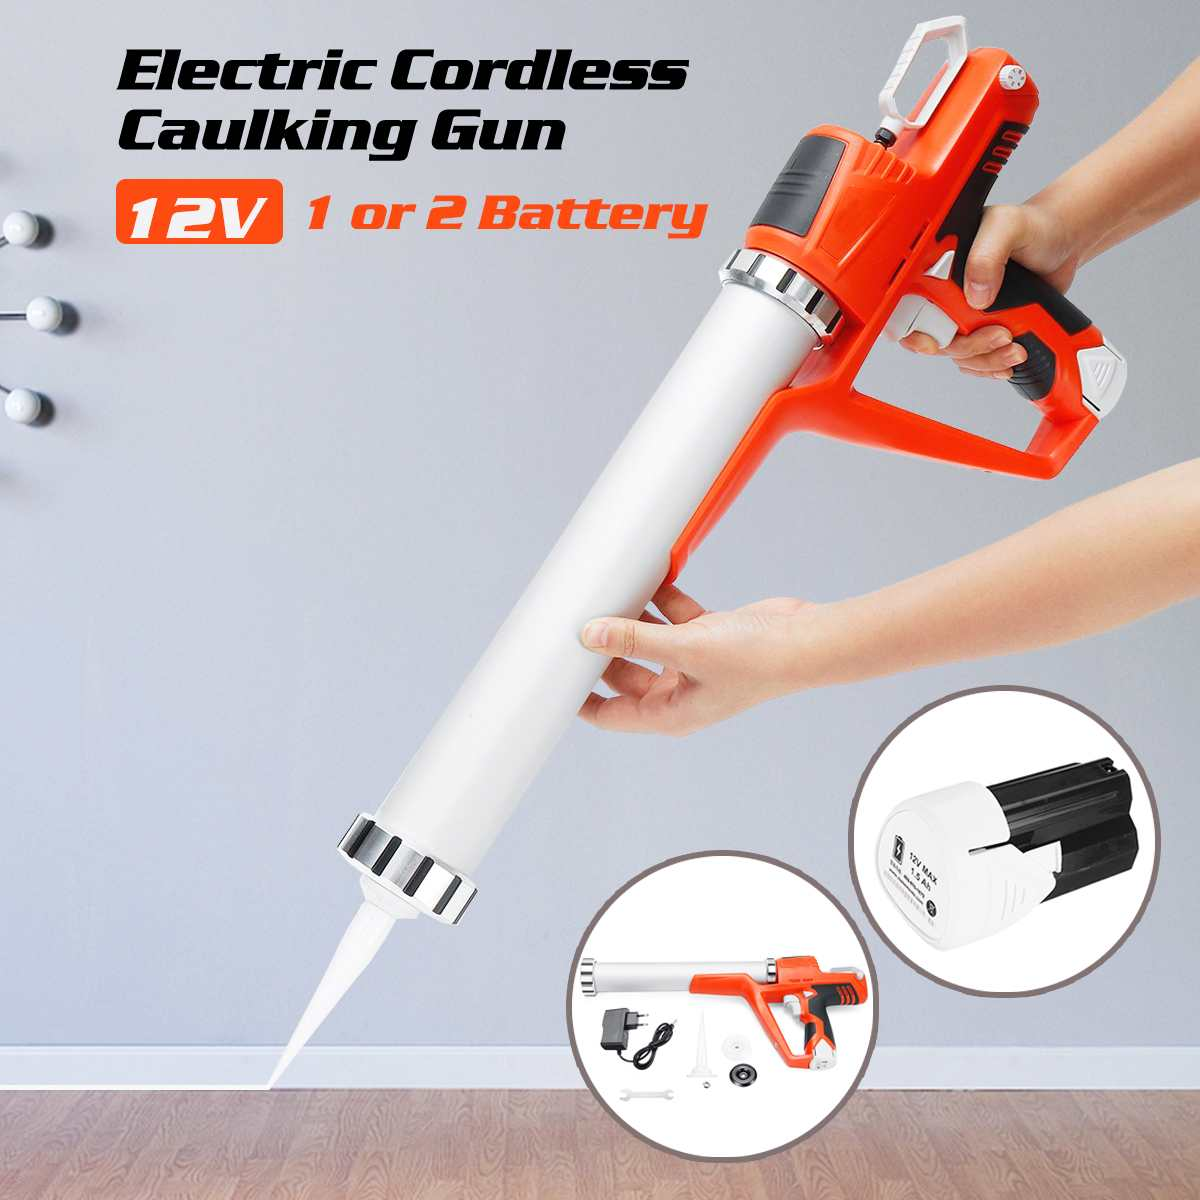 Guns Caulking Liion-Battery Cordless Electric Handheld Diy-Tools-Kit Glass 12V Hard Max